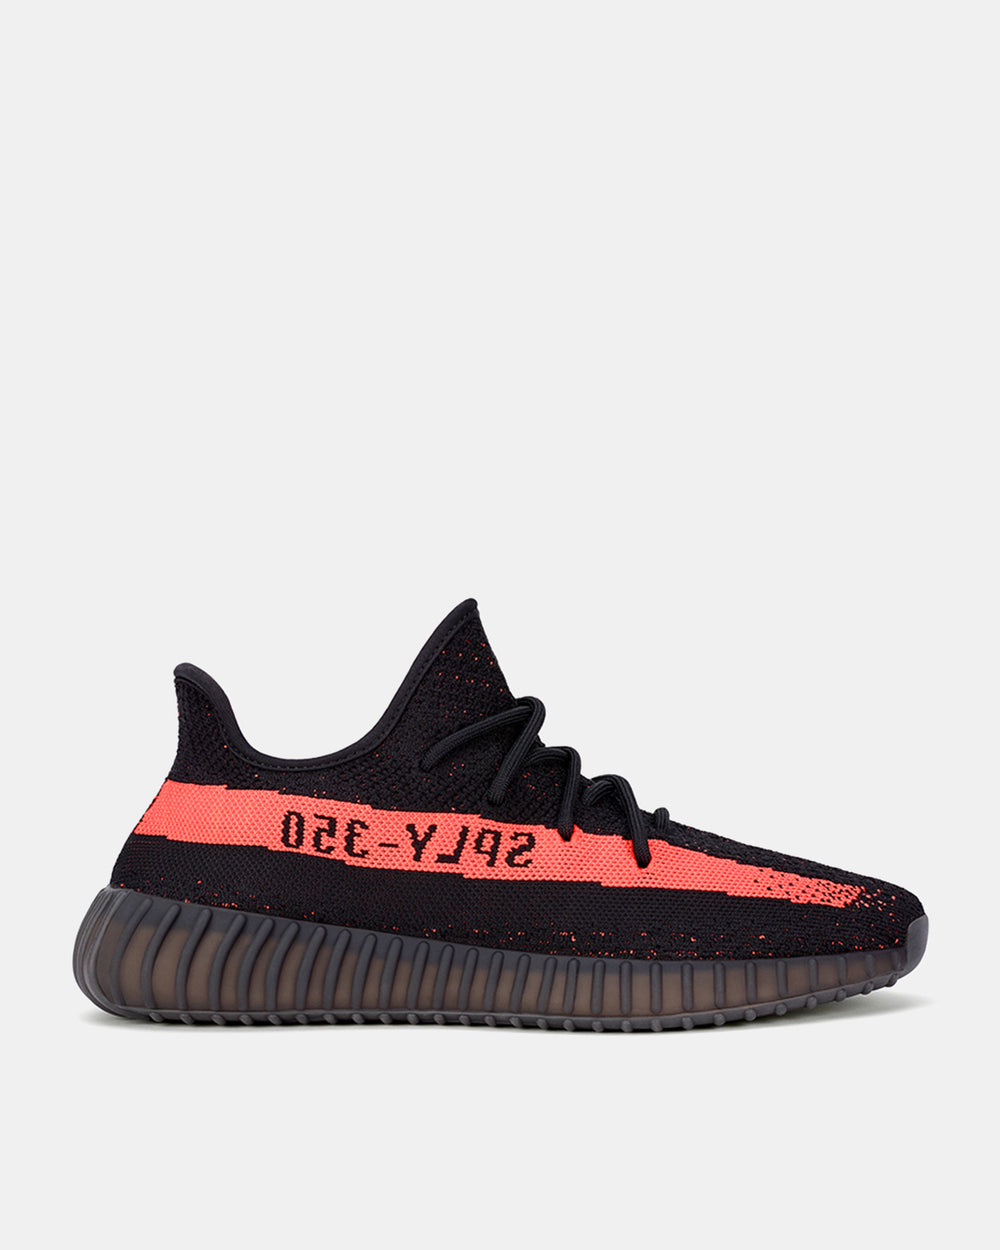 adidas - Yeezy Boost 350 V2 (Black | Red)